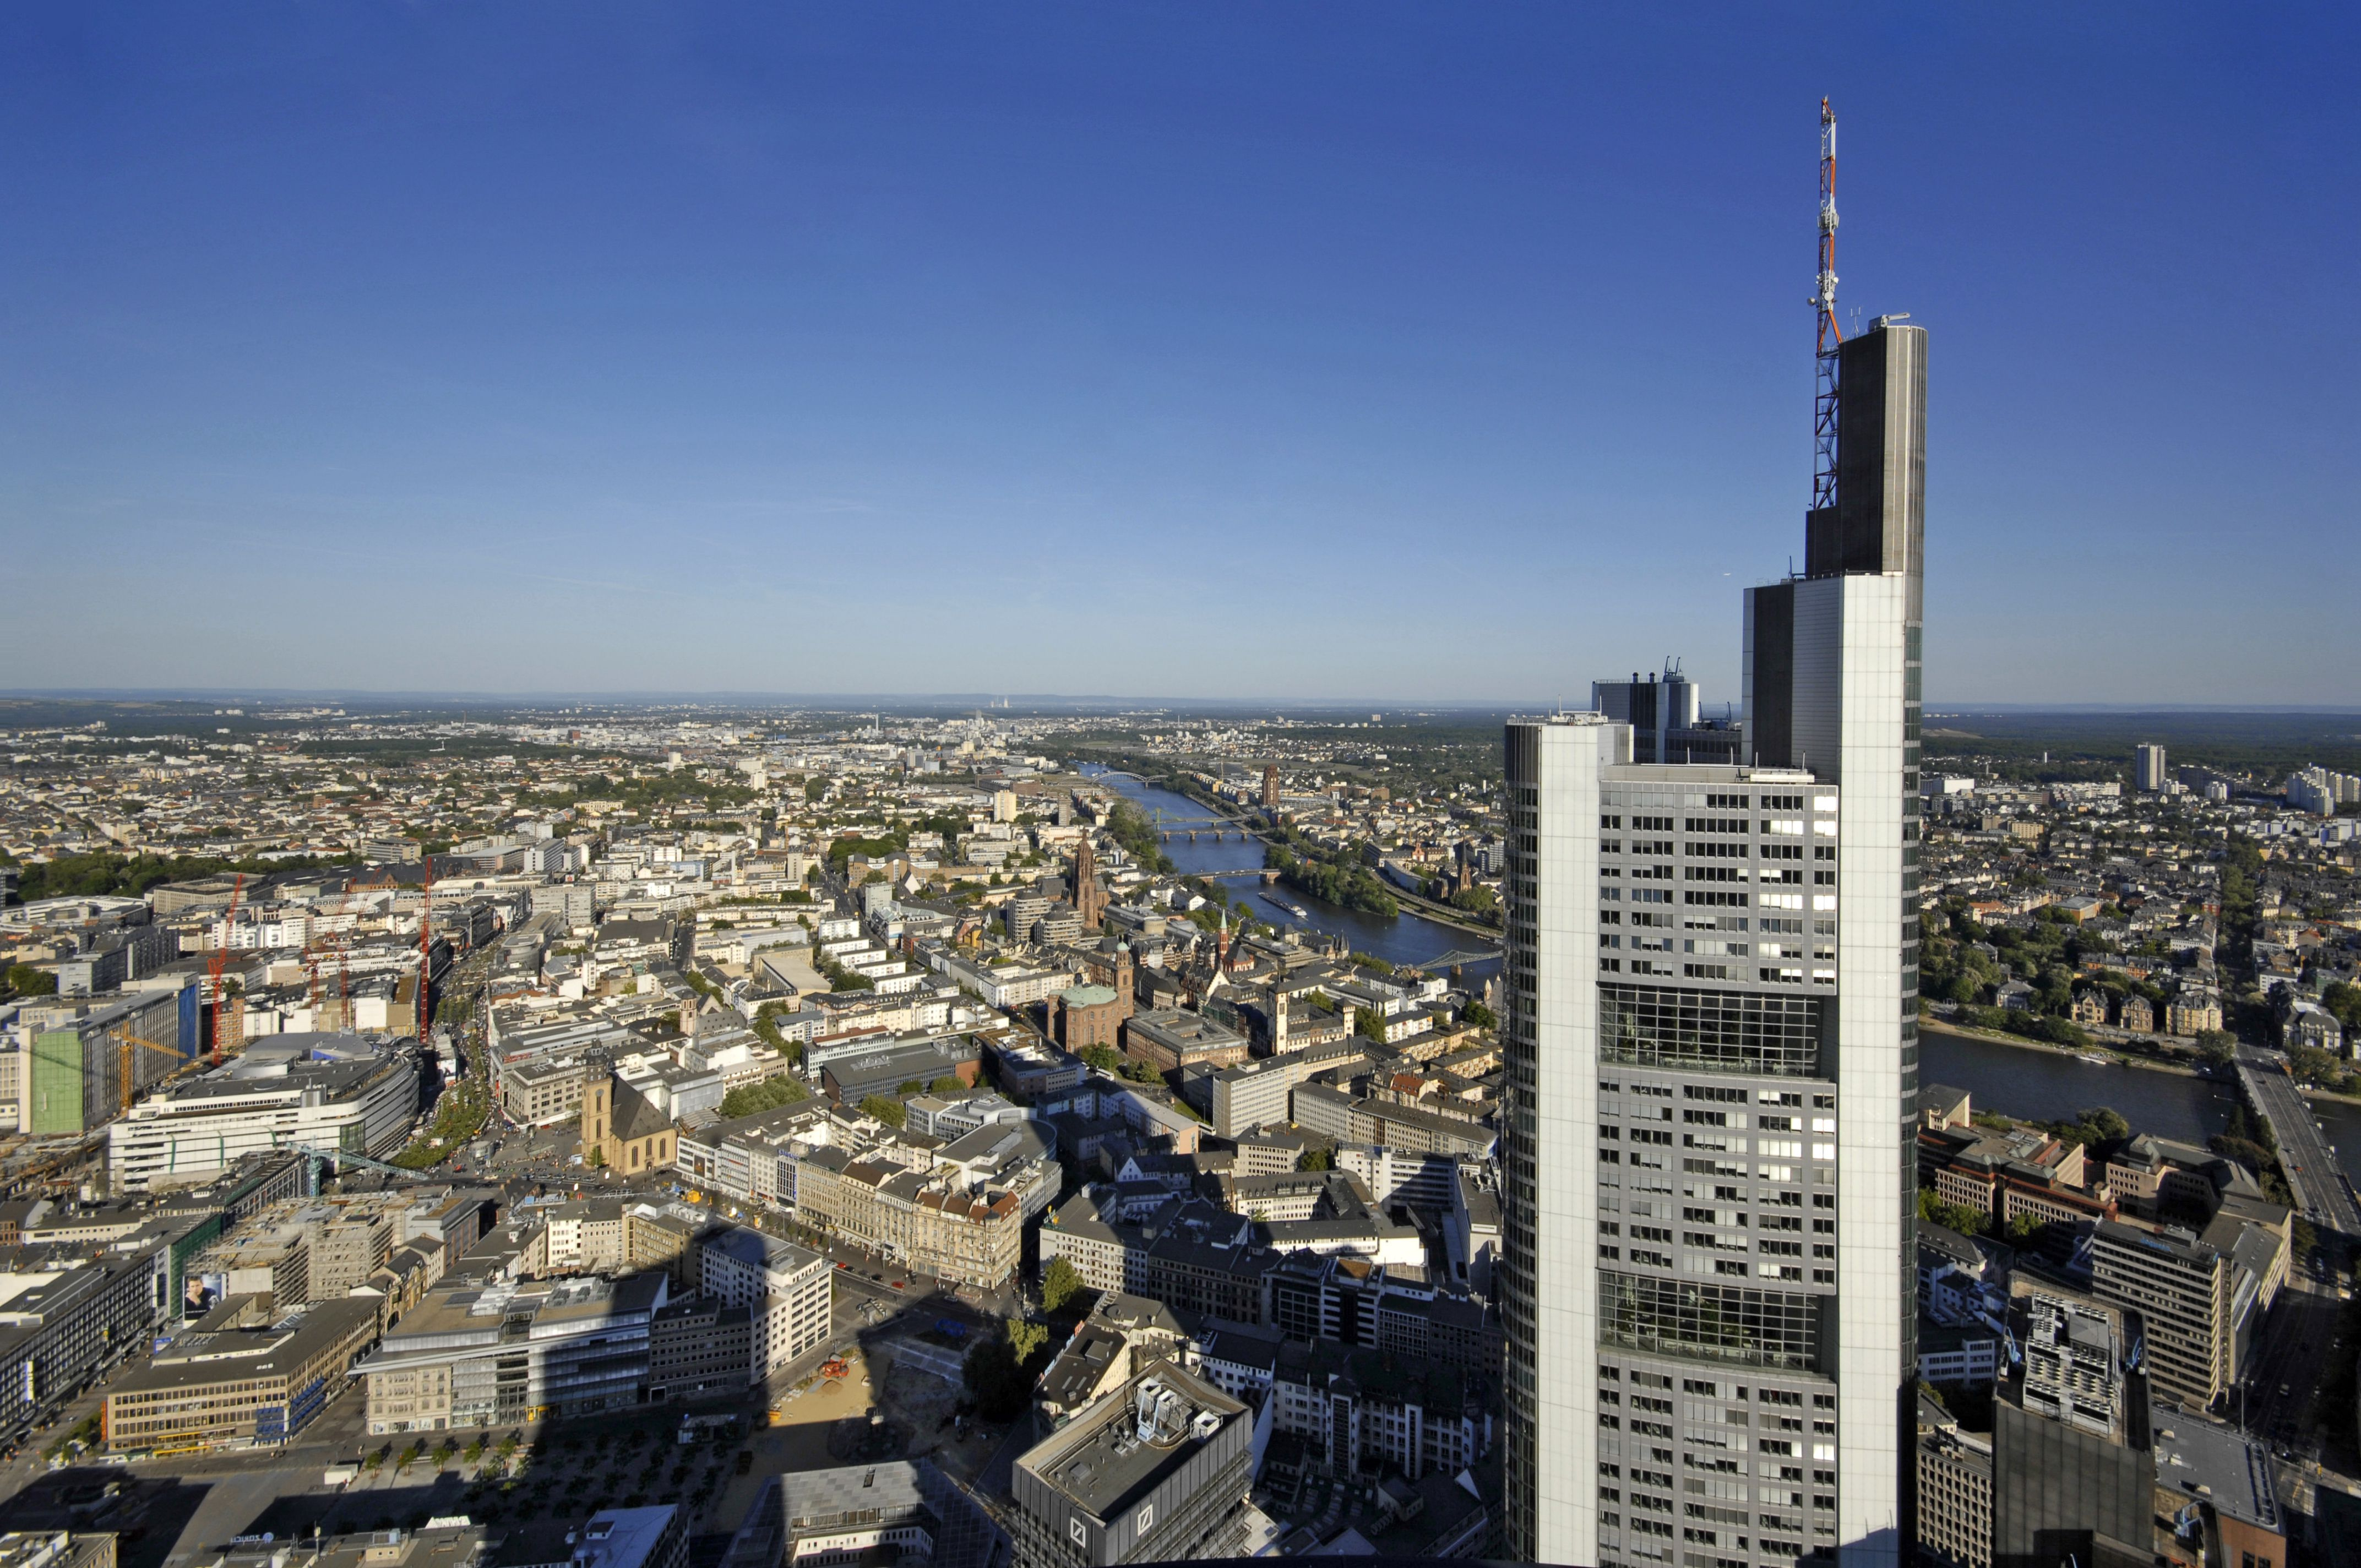 top of modern skyscraper, asymmetric, overlooking a river in Germany